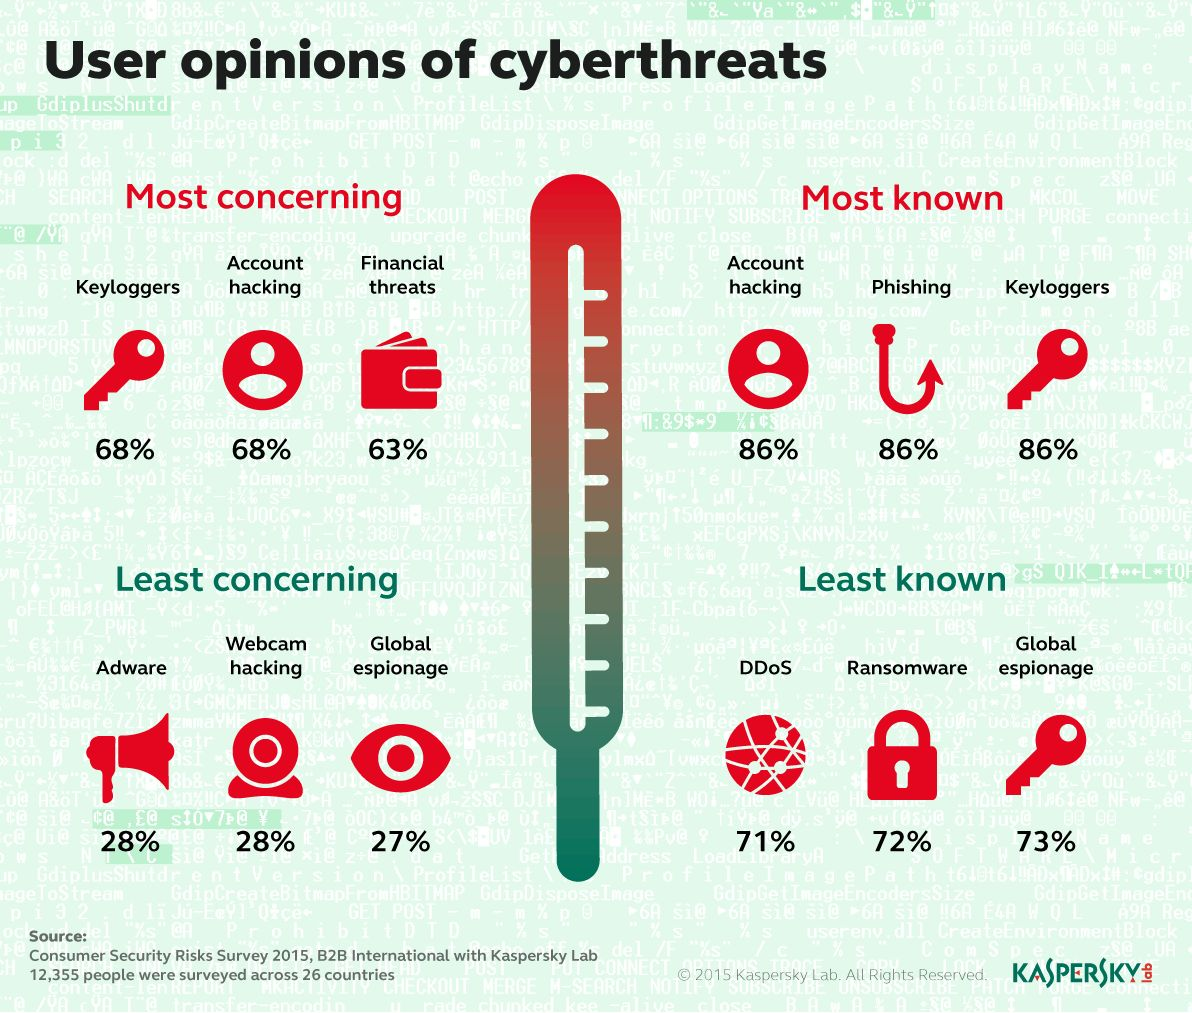 User Opinions of Cyberthreats